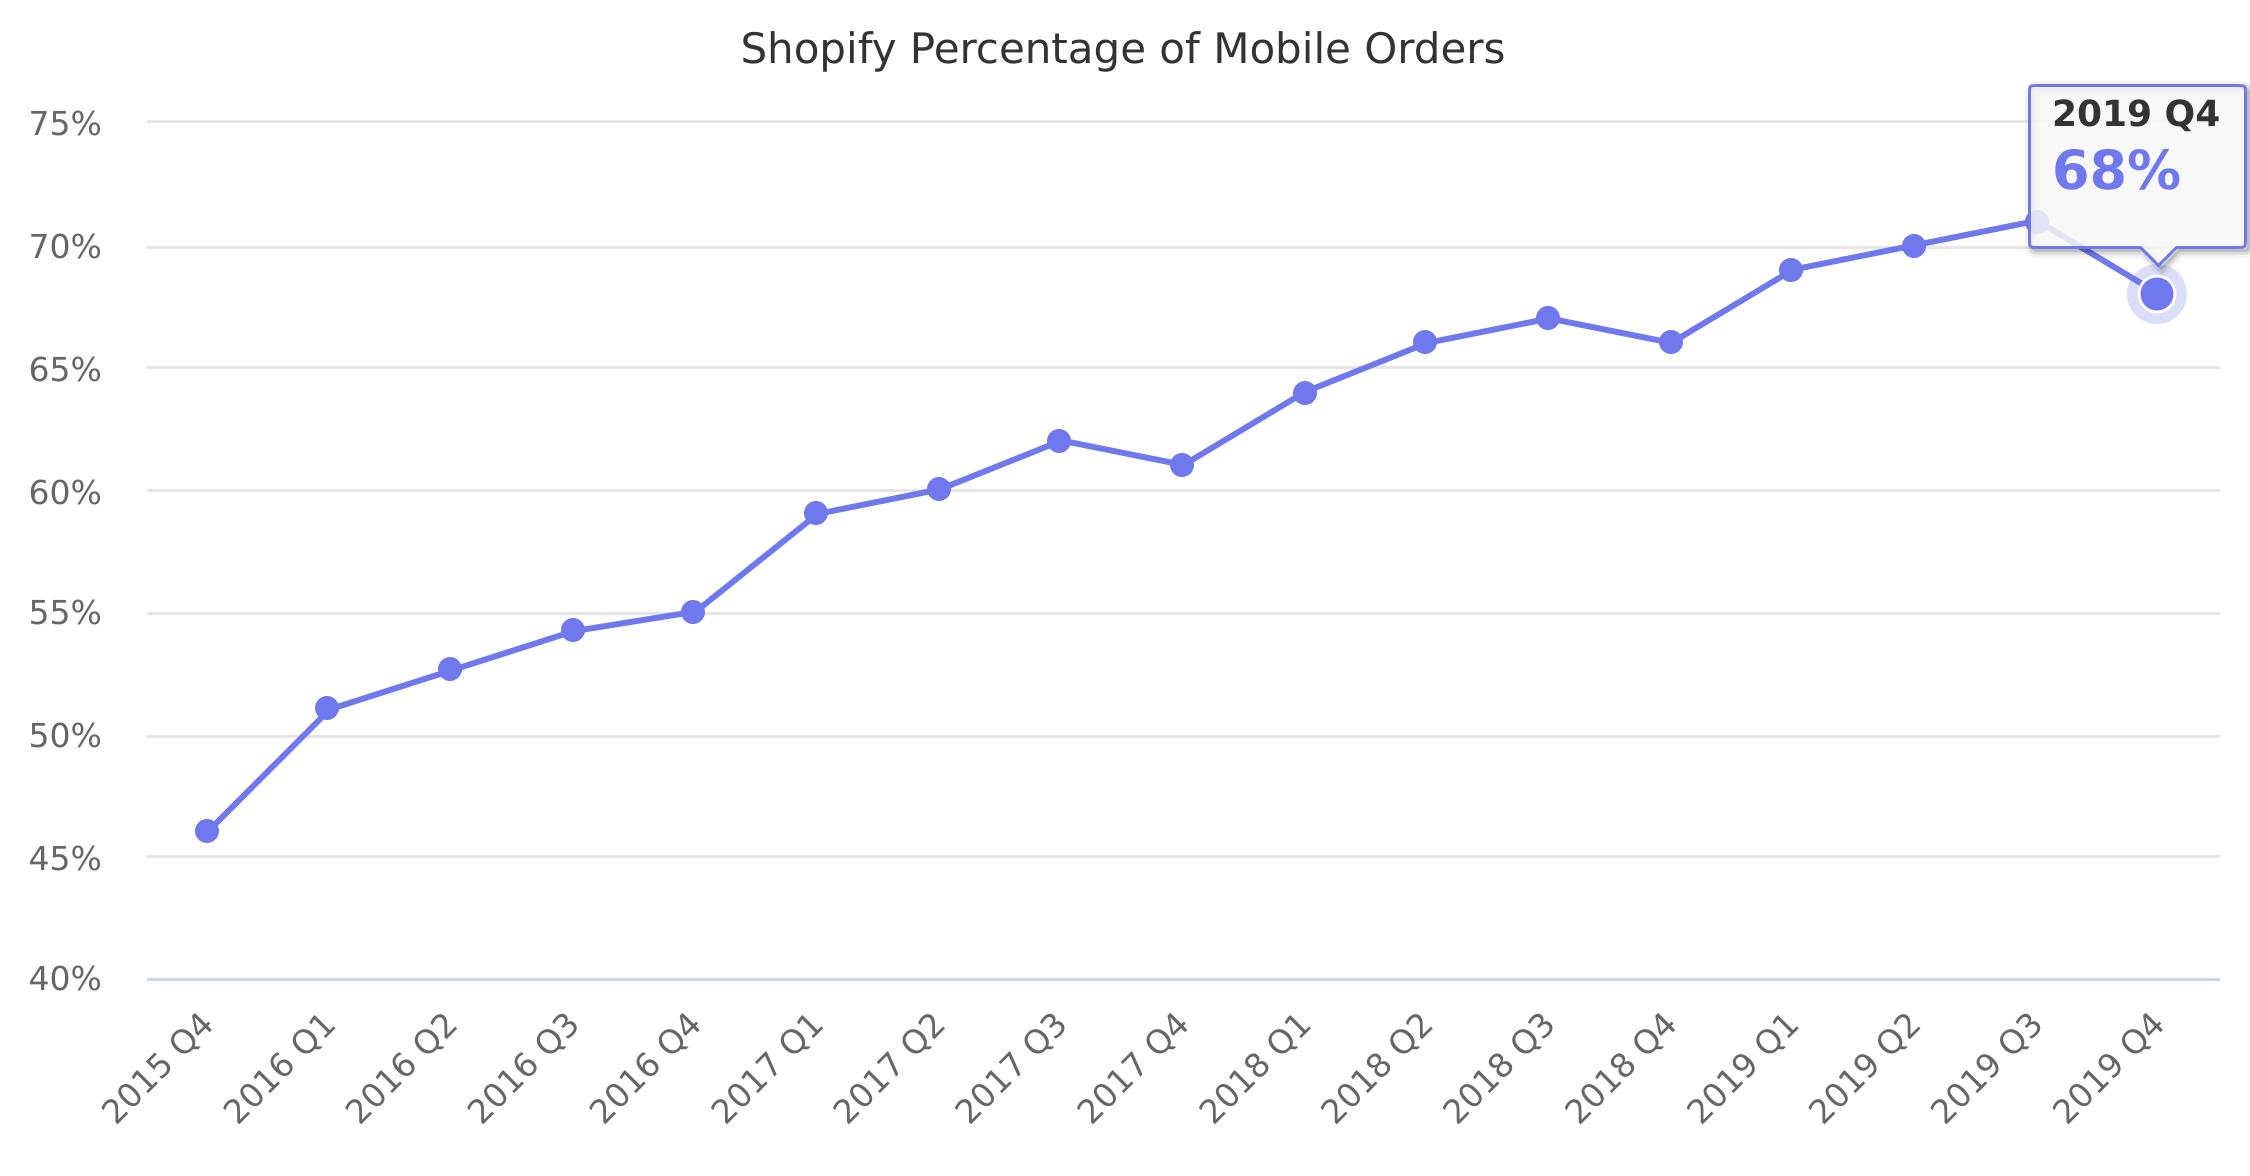 Shopify Percentage of Mobile Orders 2015-2019